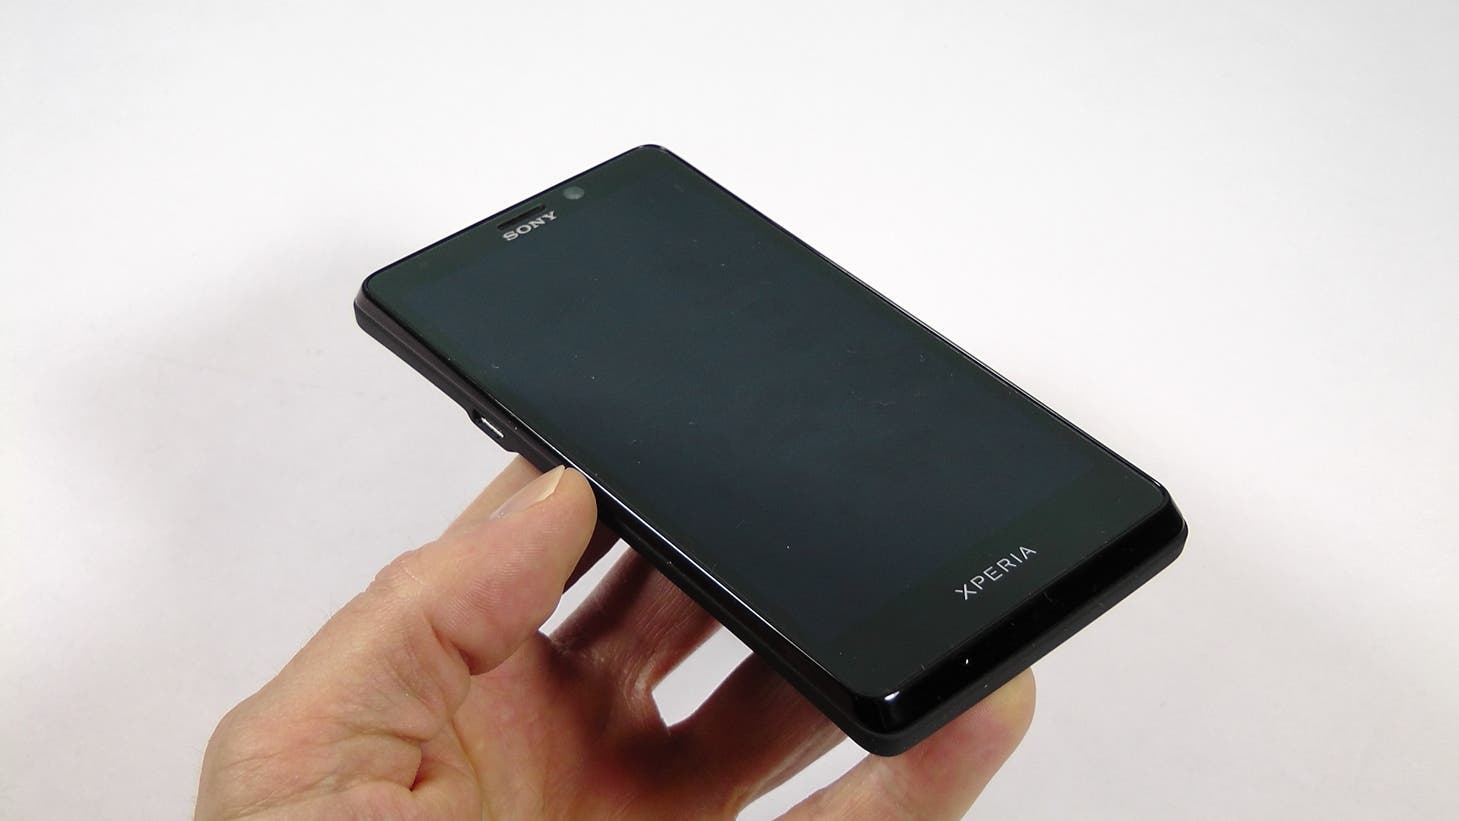 Sony Xperia T Test 21